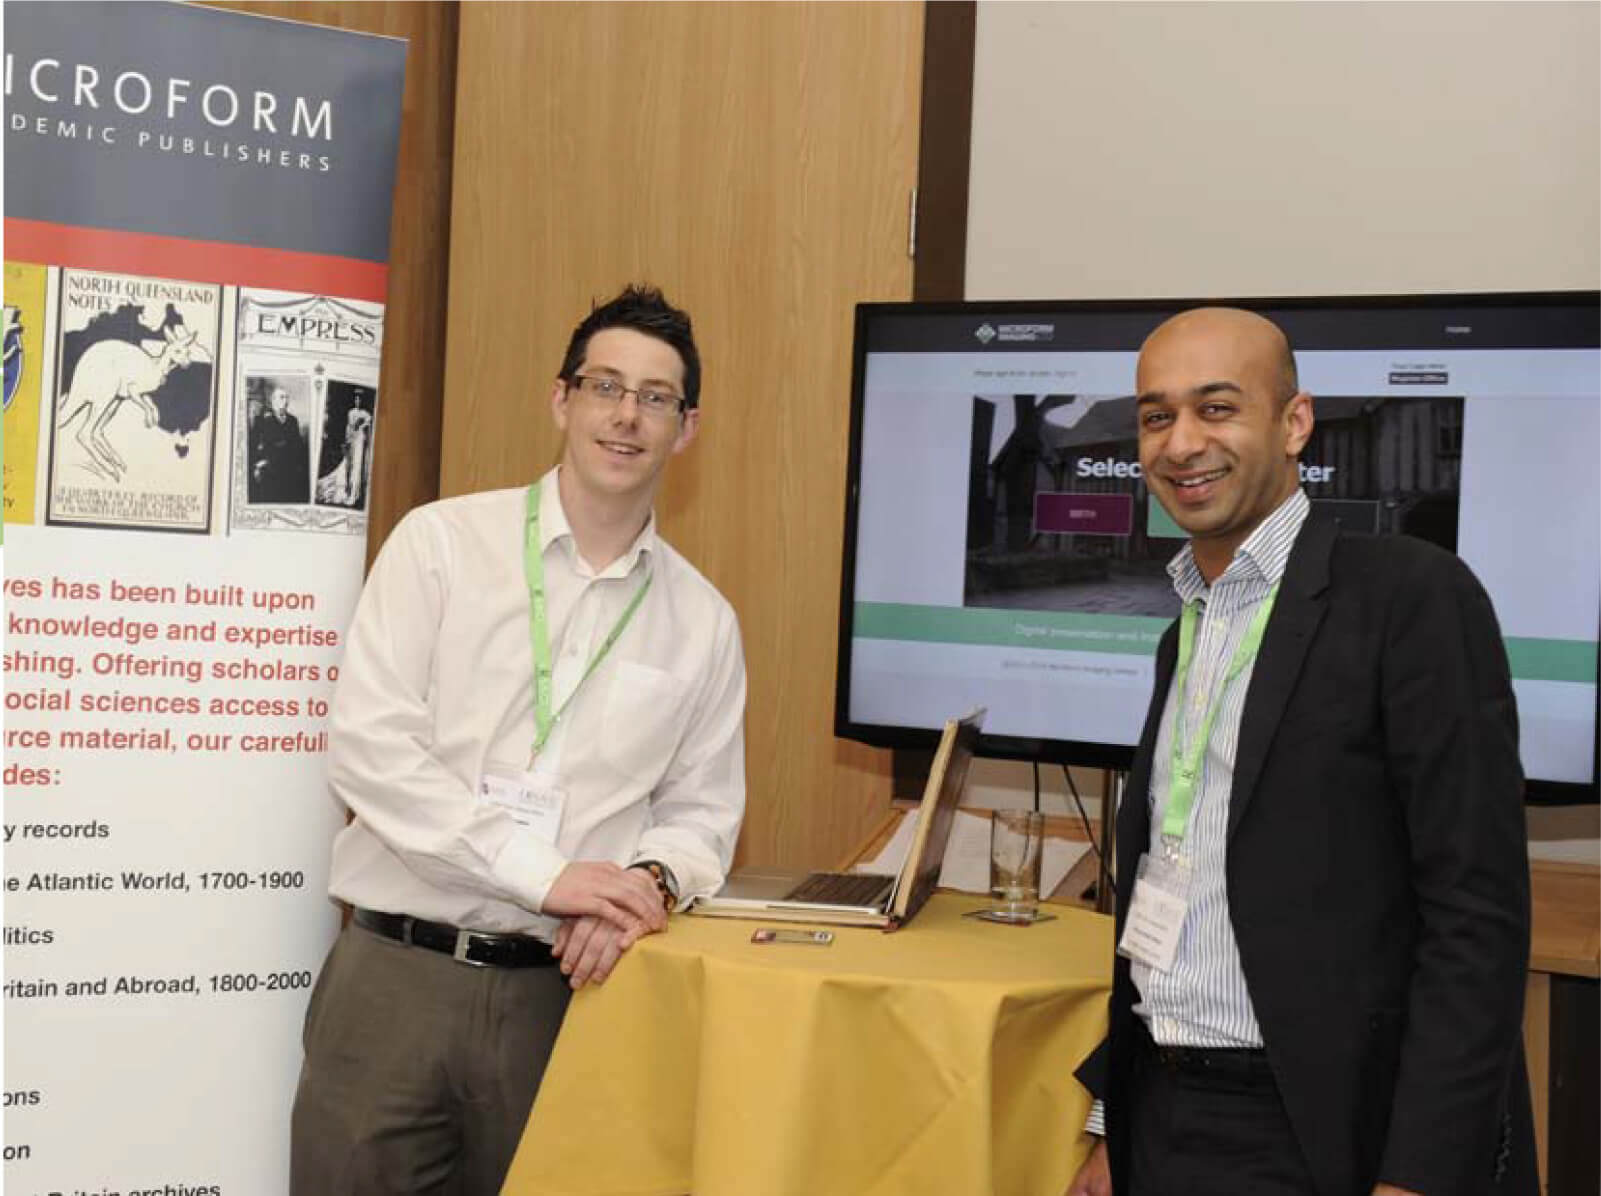 Microform Imaging Ltd at the LRSA Conference